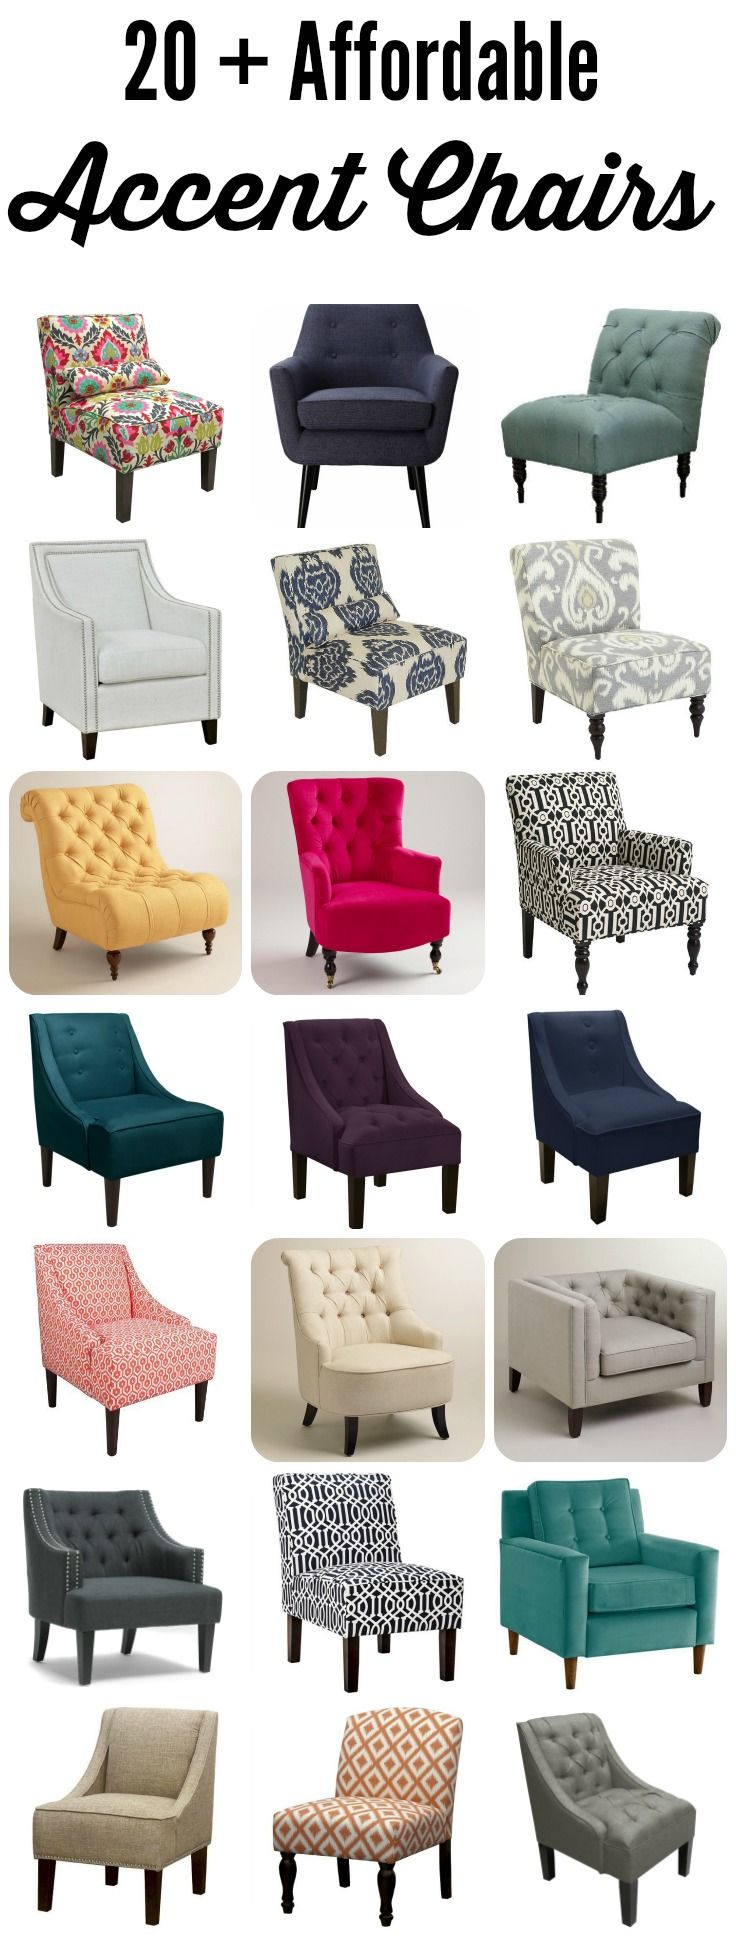 Best Sources for Affordable Accent Chairs | Room, Designers and Bodies